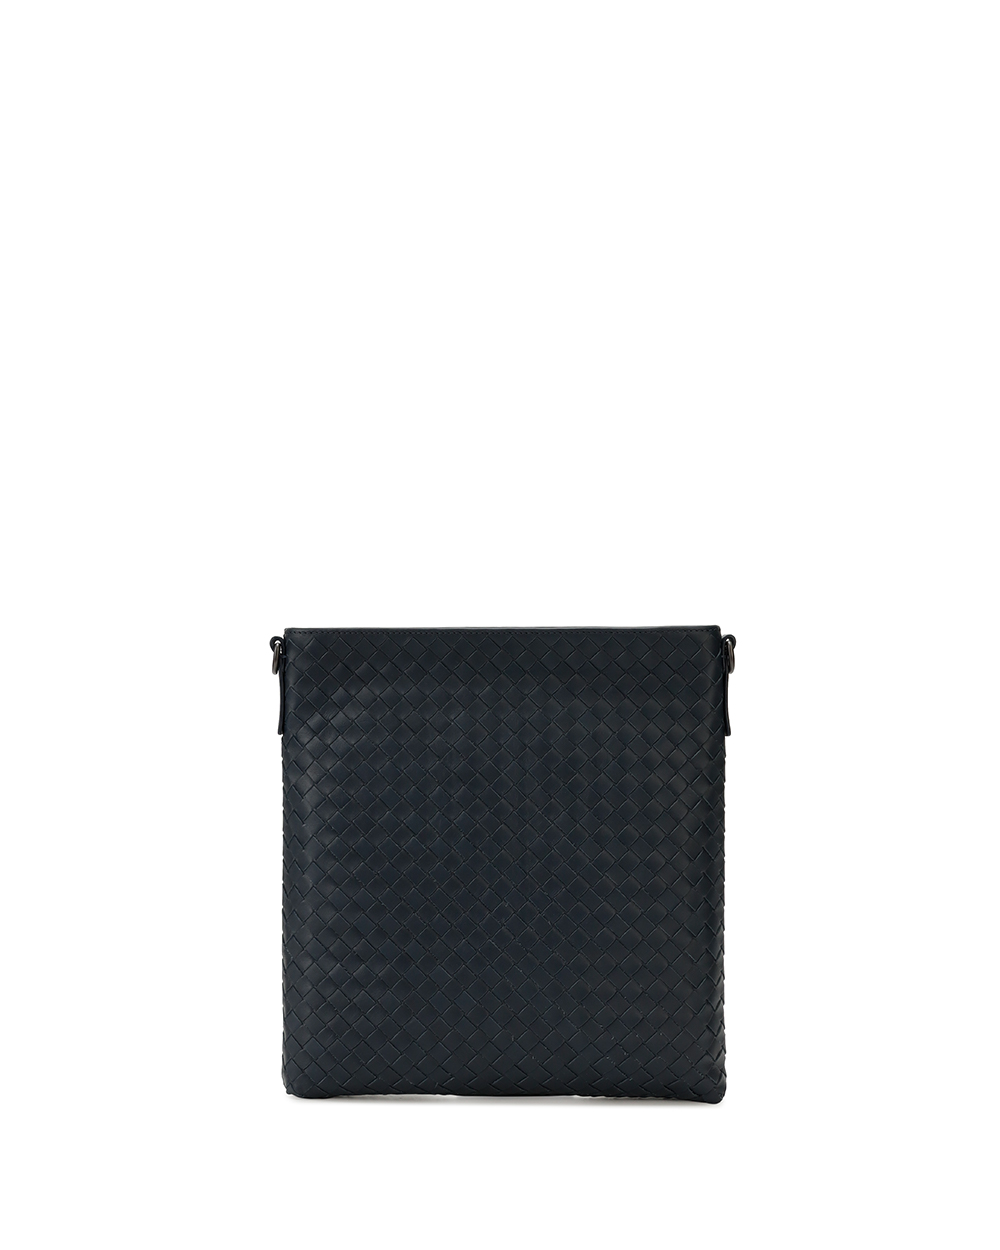 Woven Lamb Leather Shoulder Bag 4